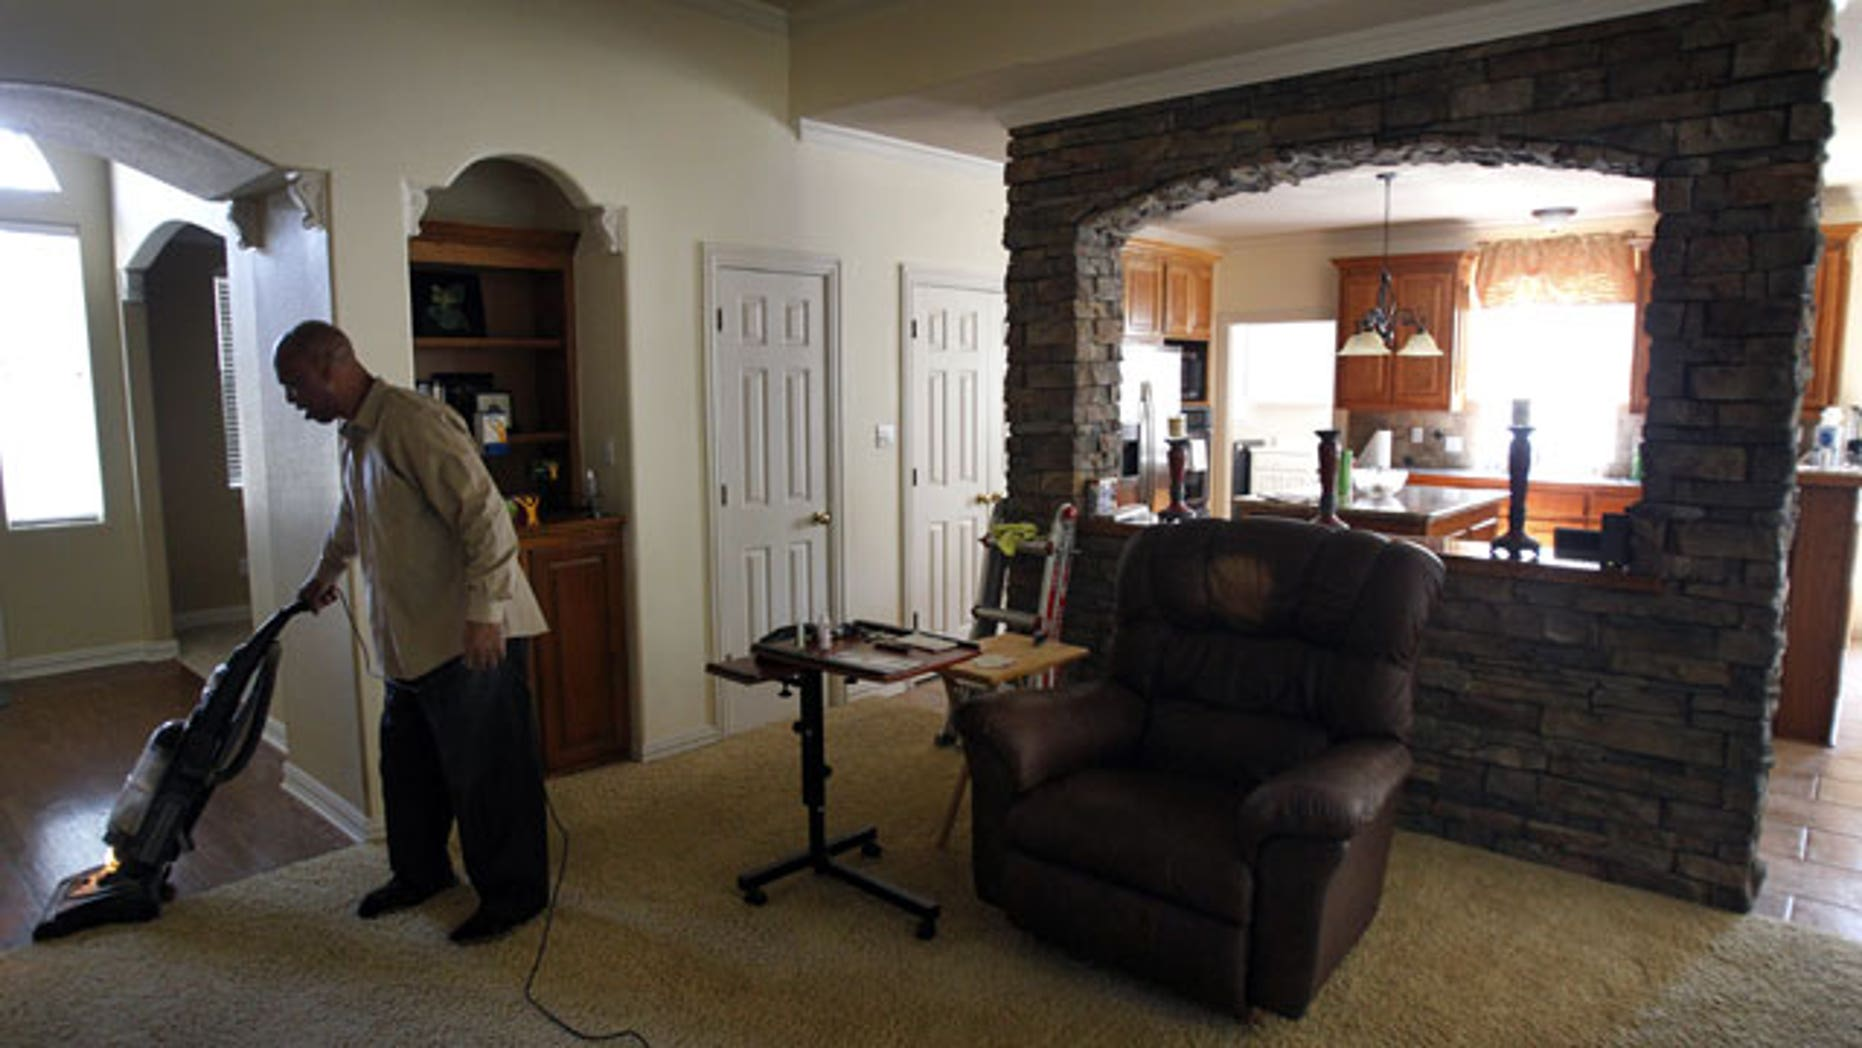 In this photo taken Wednesday, July 27, 2011, Kenneth Robinson vacuums the spacious living room of the home in Flower Mound, Texas.